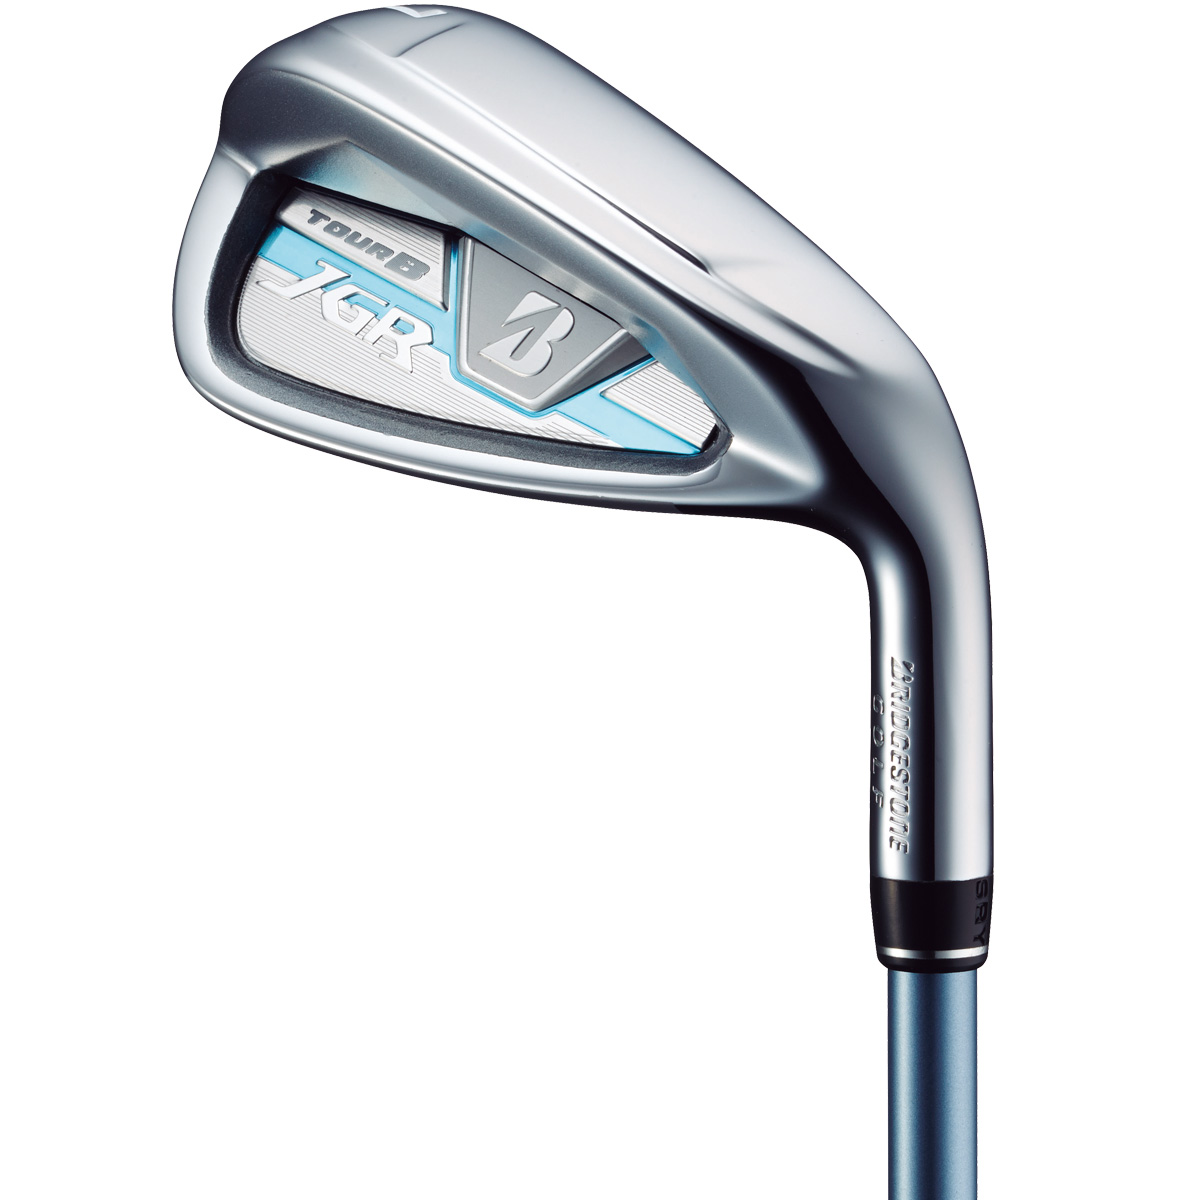 TOUR B JGR アイアン(5本セット) Air Speeder L for Iron レディス